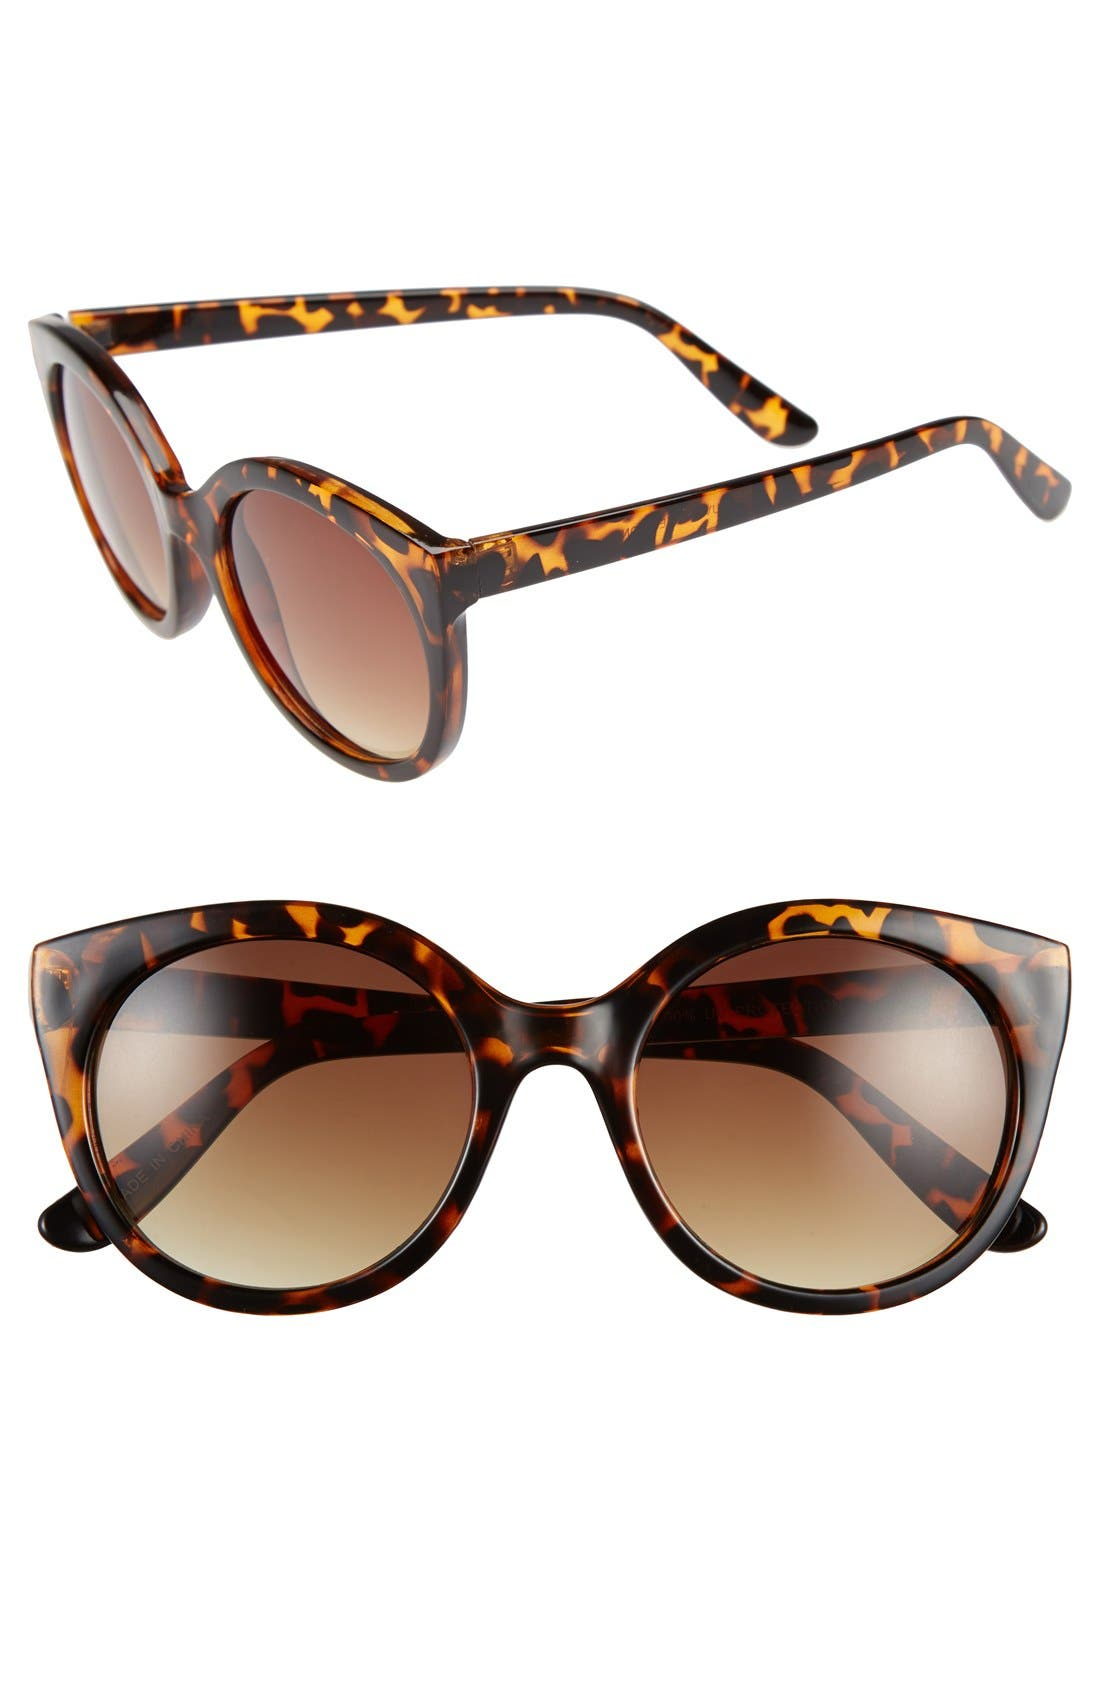 60mm Retro Sunglasses,                         Main,                         color, Tort